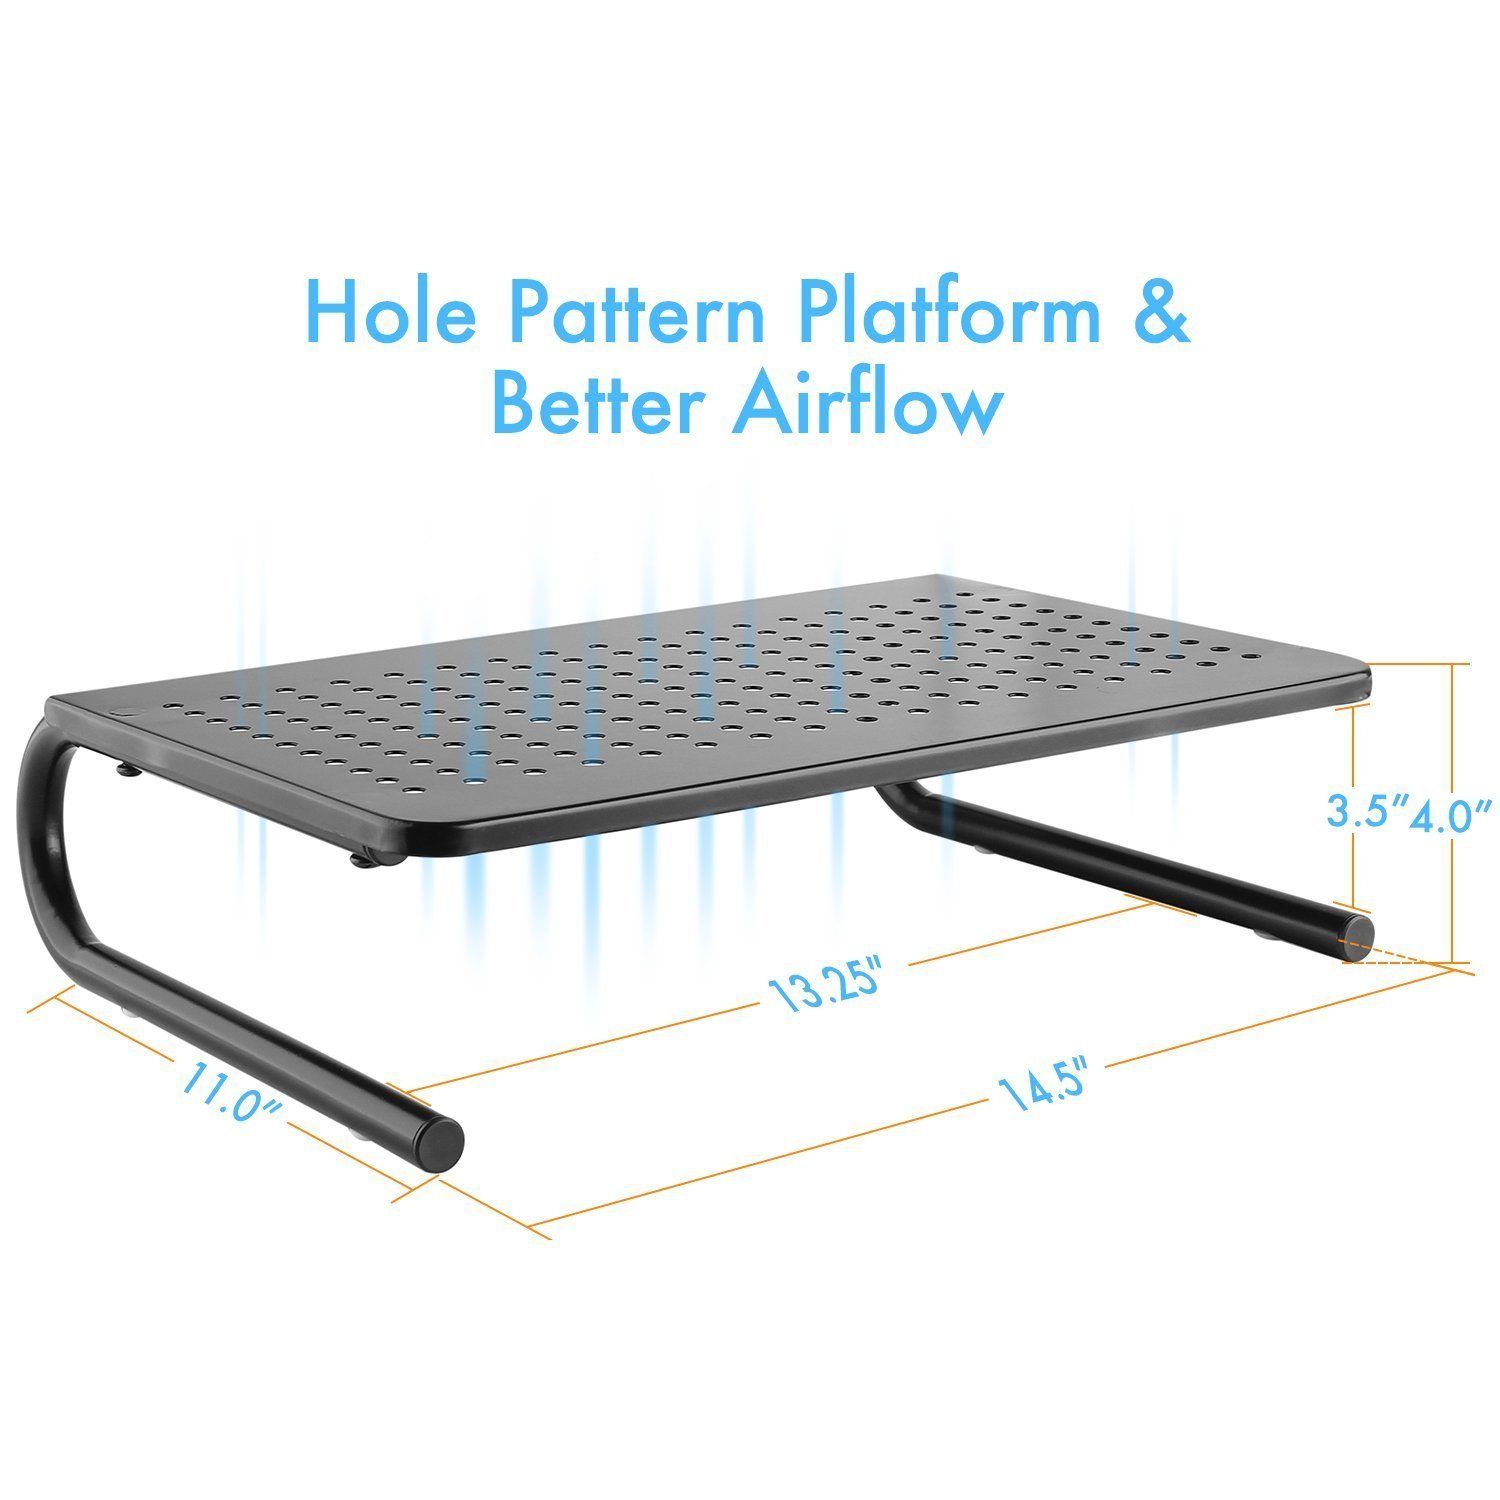 Monitor Stand Riser with Vented Metal for Computer, Laptop, Desk, iMac, Printer with 14.5 Platform 4 inch Height (Black, 2 Pack) by HUANUO (Image #2)